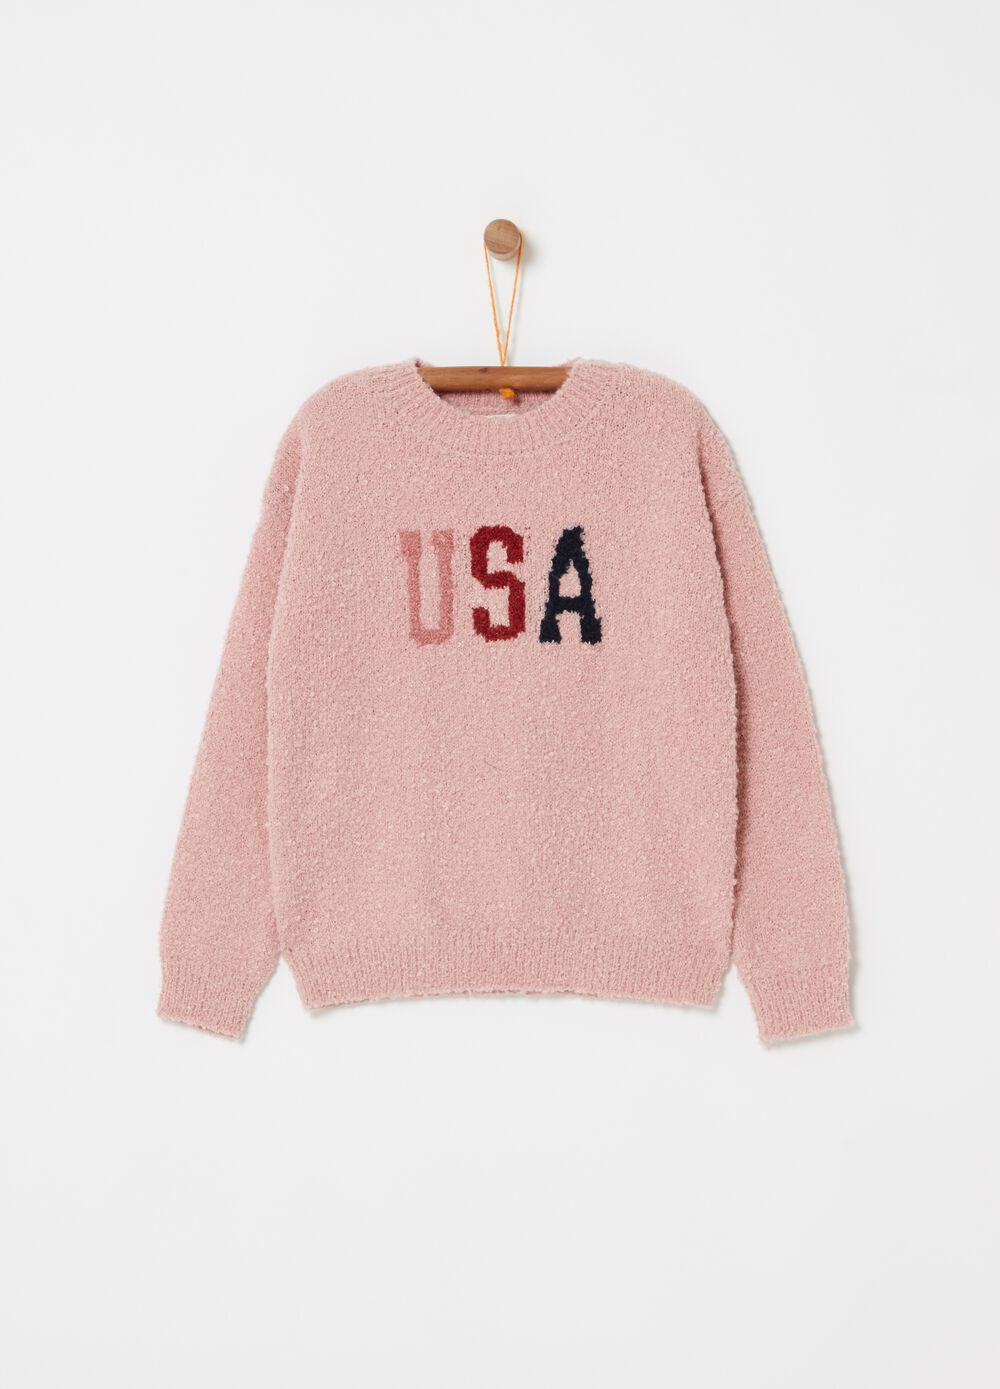 Solid colour top with USA lettering print